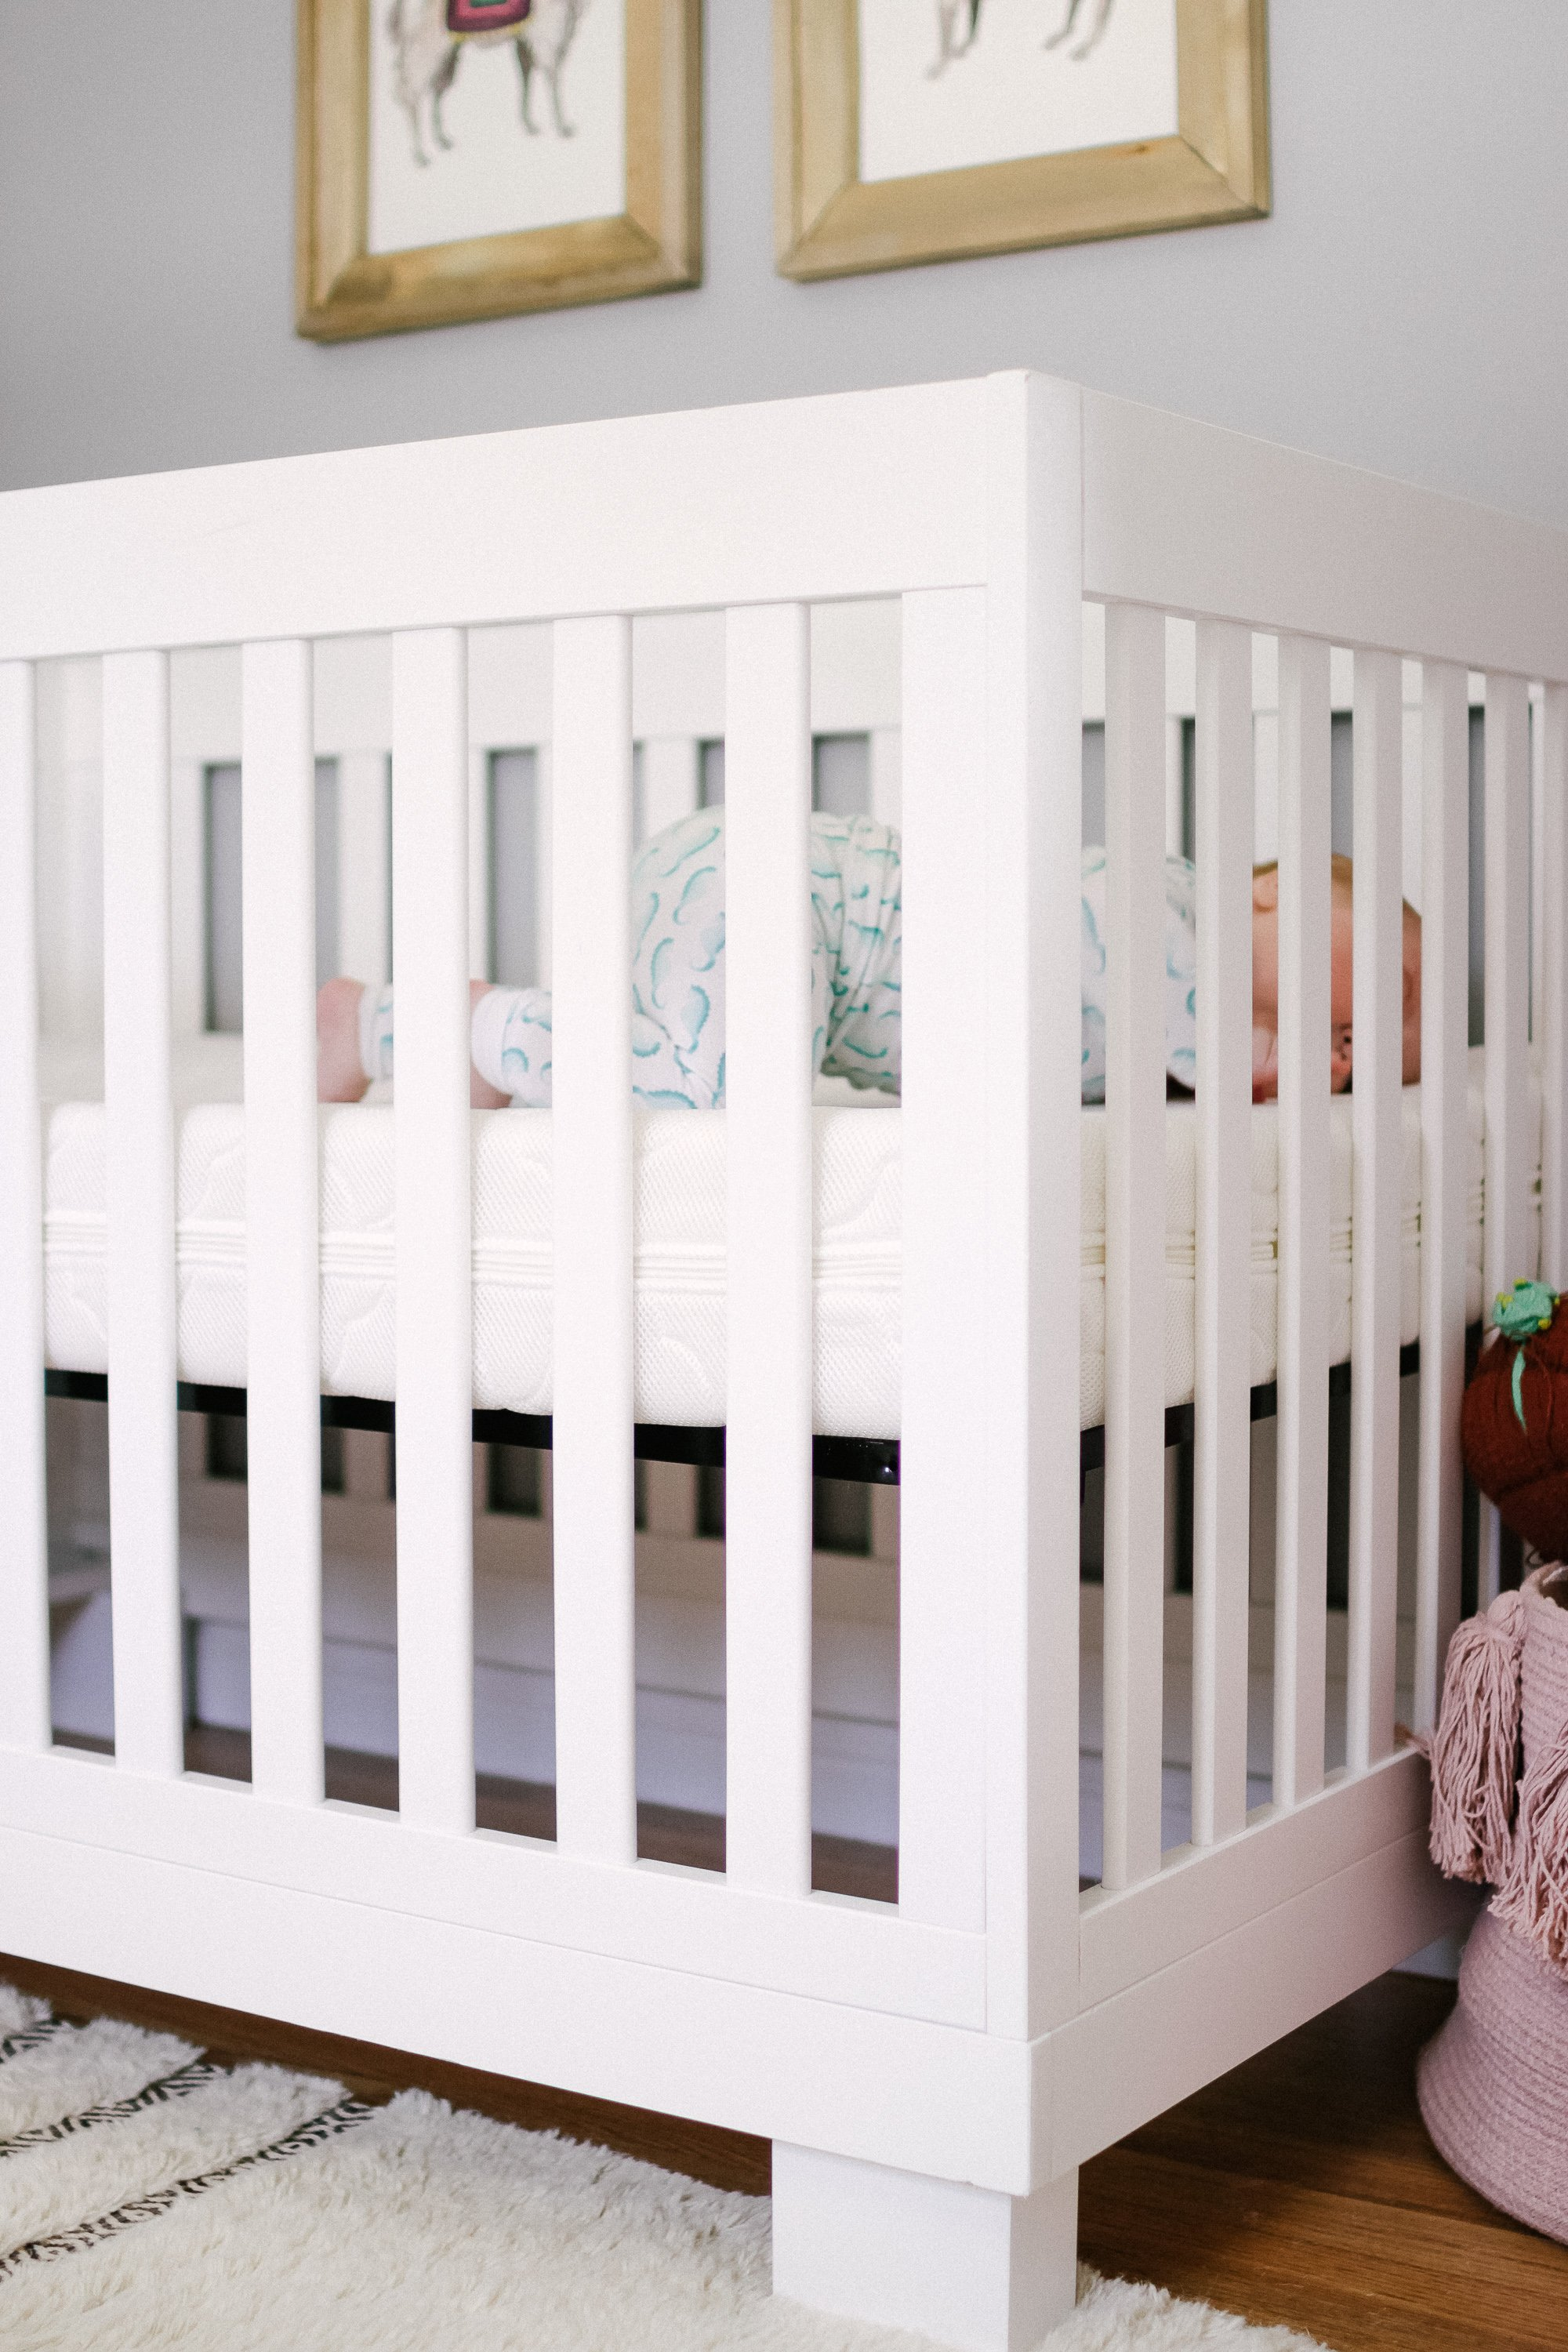 Review On The Newton Baby Crib Mattress and our last three months with it